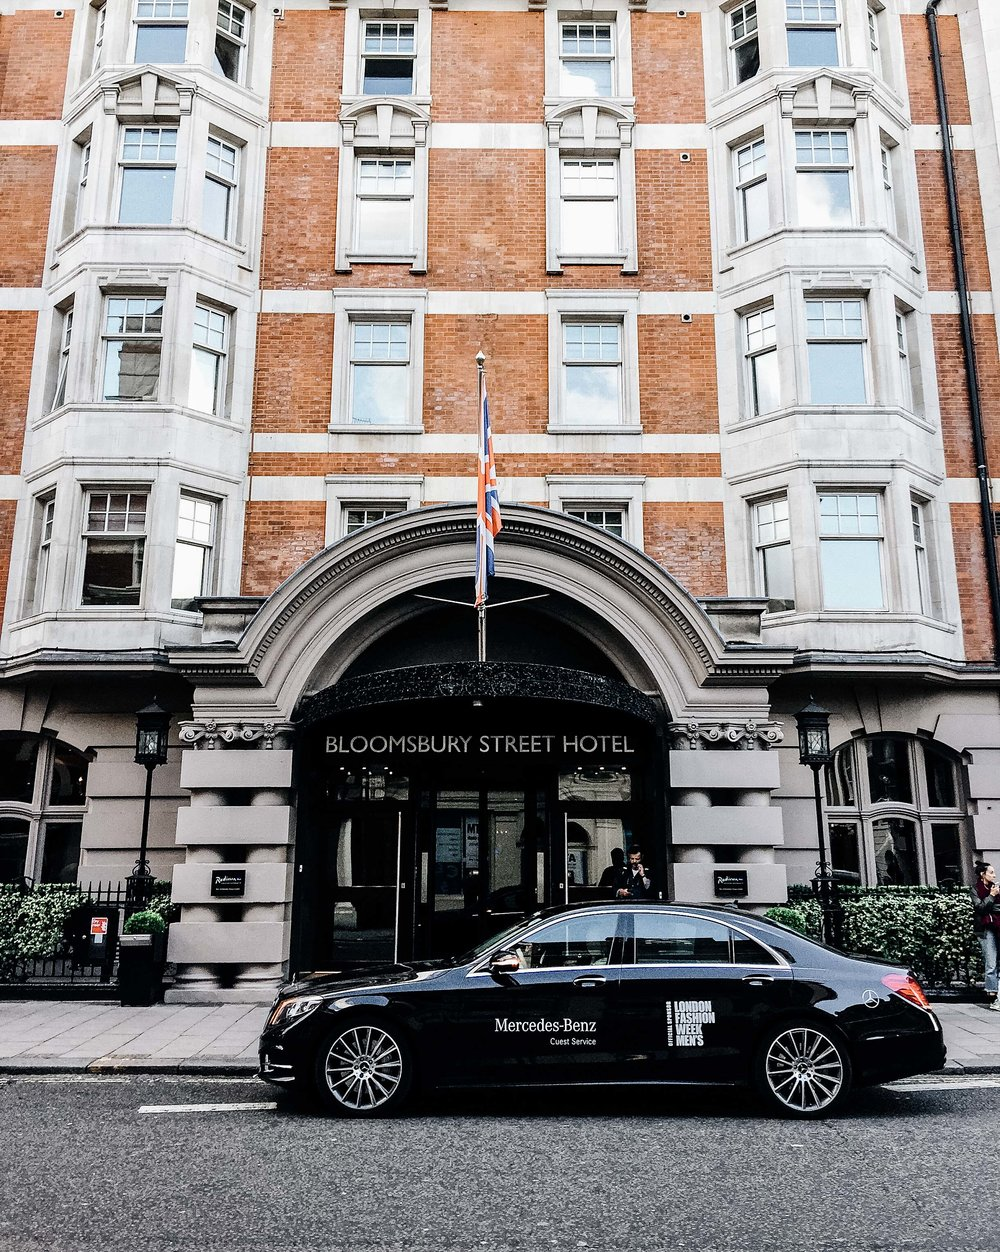 Mercedes-Benz Guest Service Car for LFWM